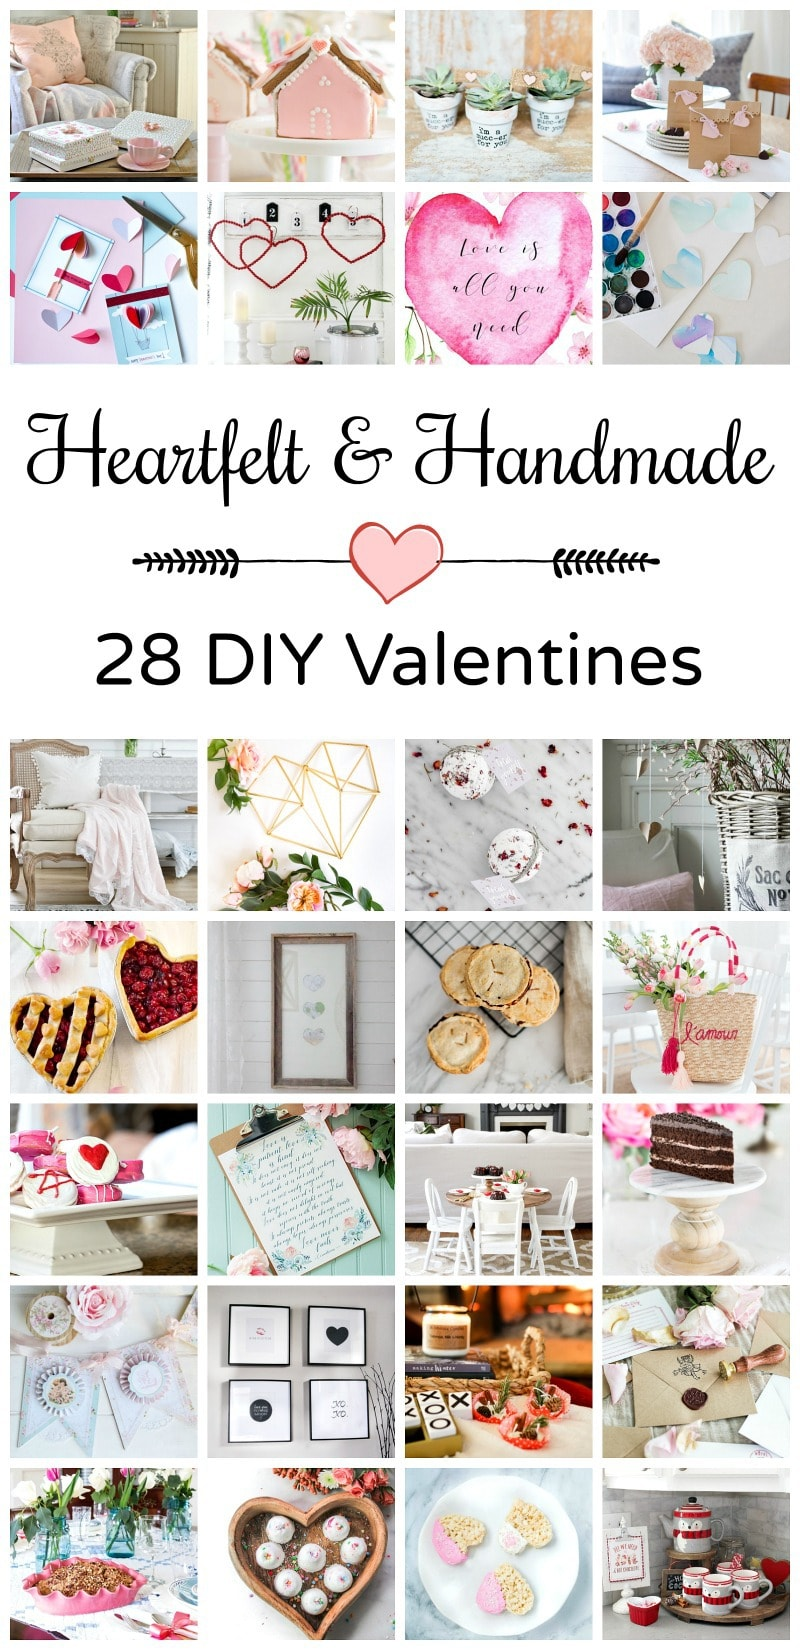 25 DIY Gift Ideas for Valentine's Day